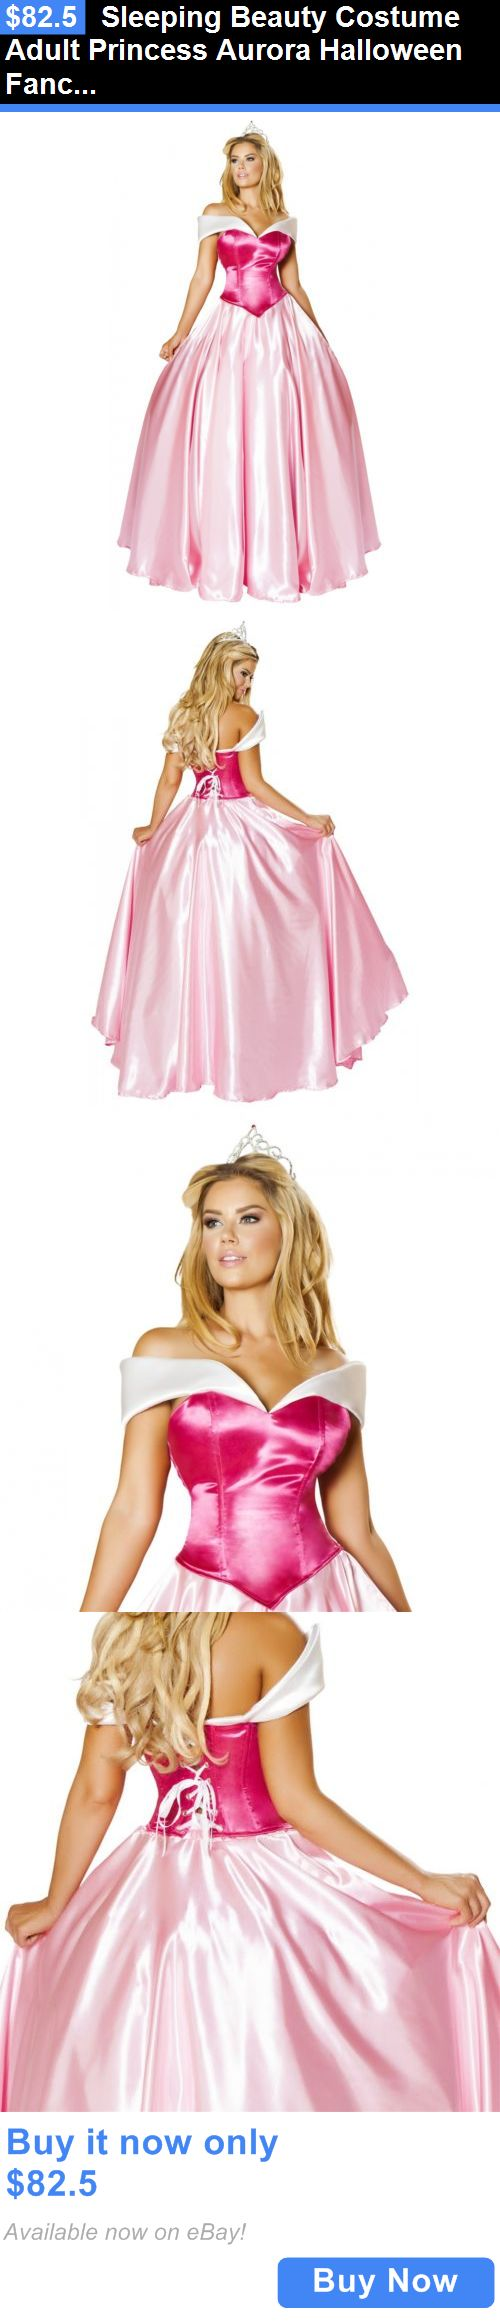 Halloween Costumes Women: Sleeping Beauty Costume Adult Princess Aurora Halloween Fancy Dress BUY IT NOW ONLY: $82.5